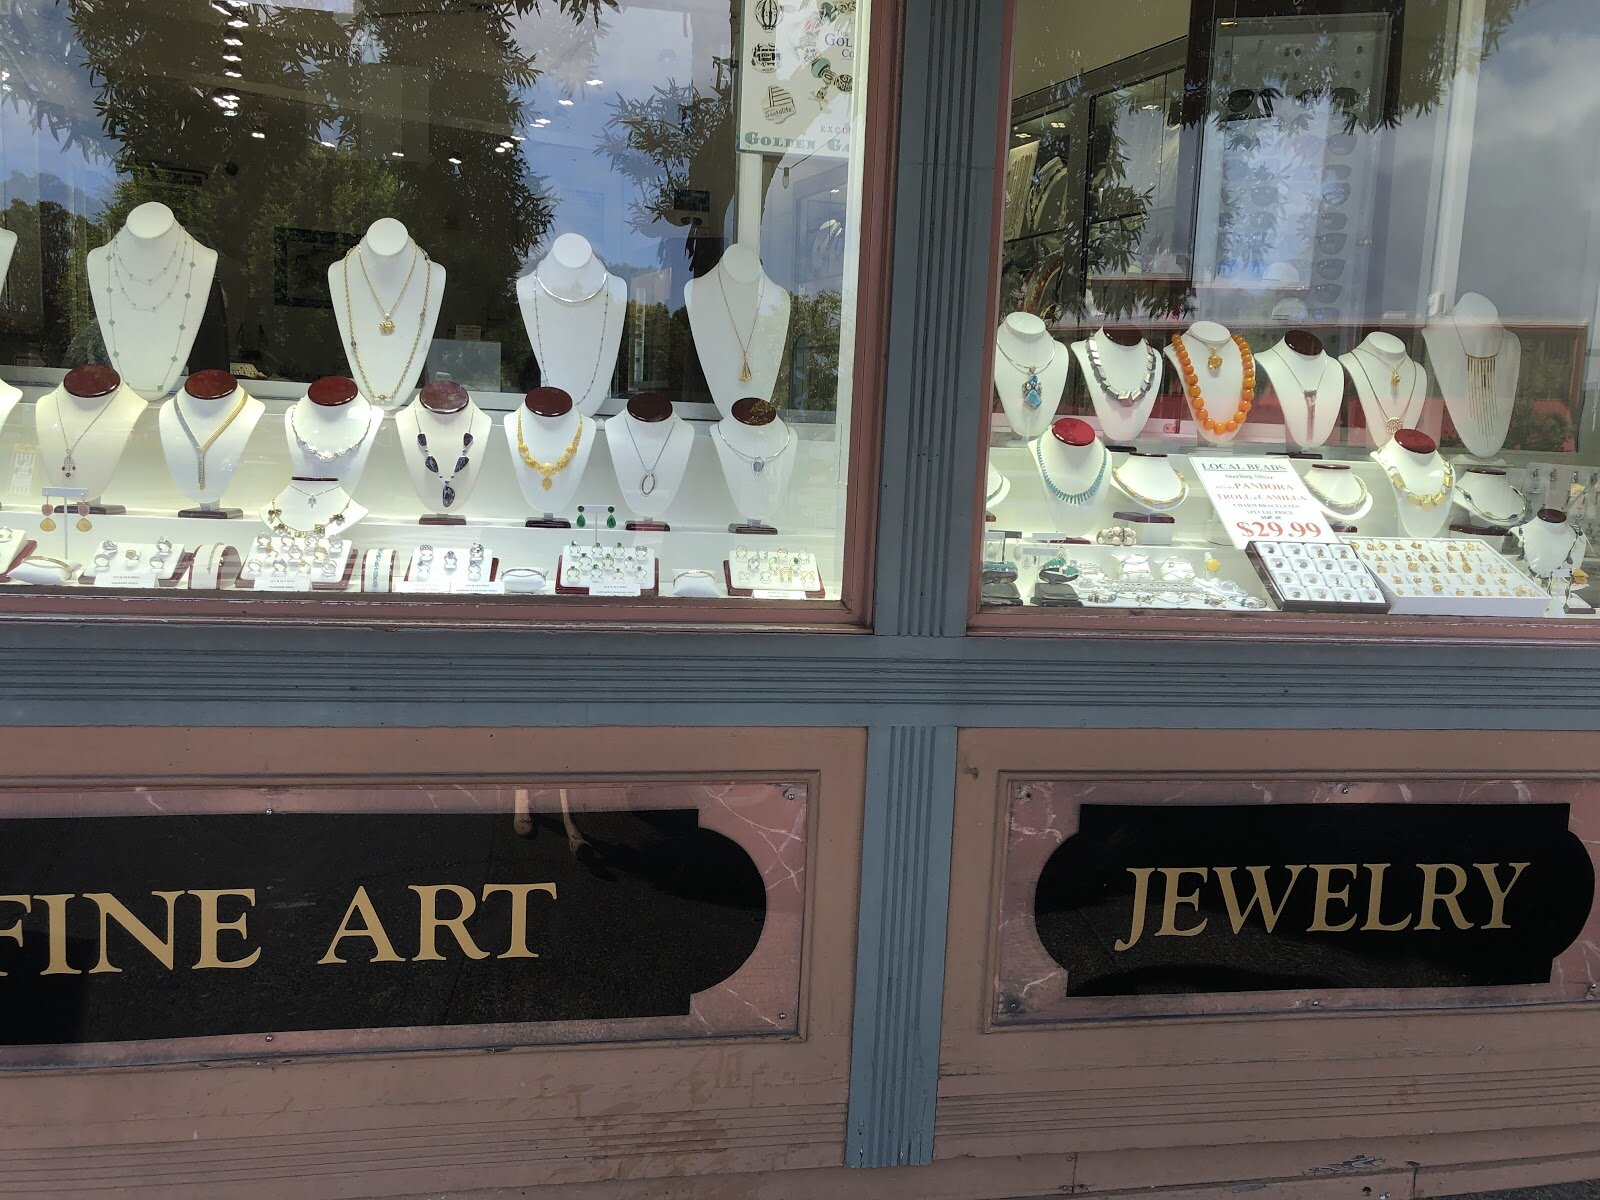 Jewelry Shop in Sausalito